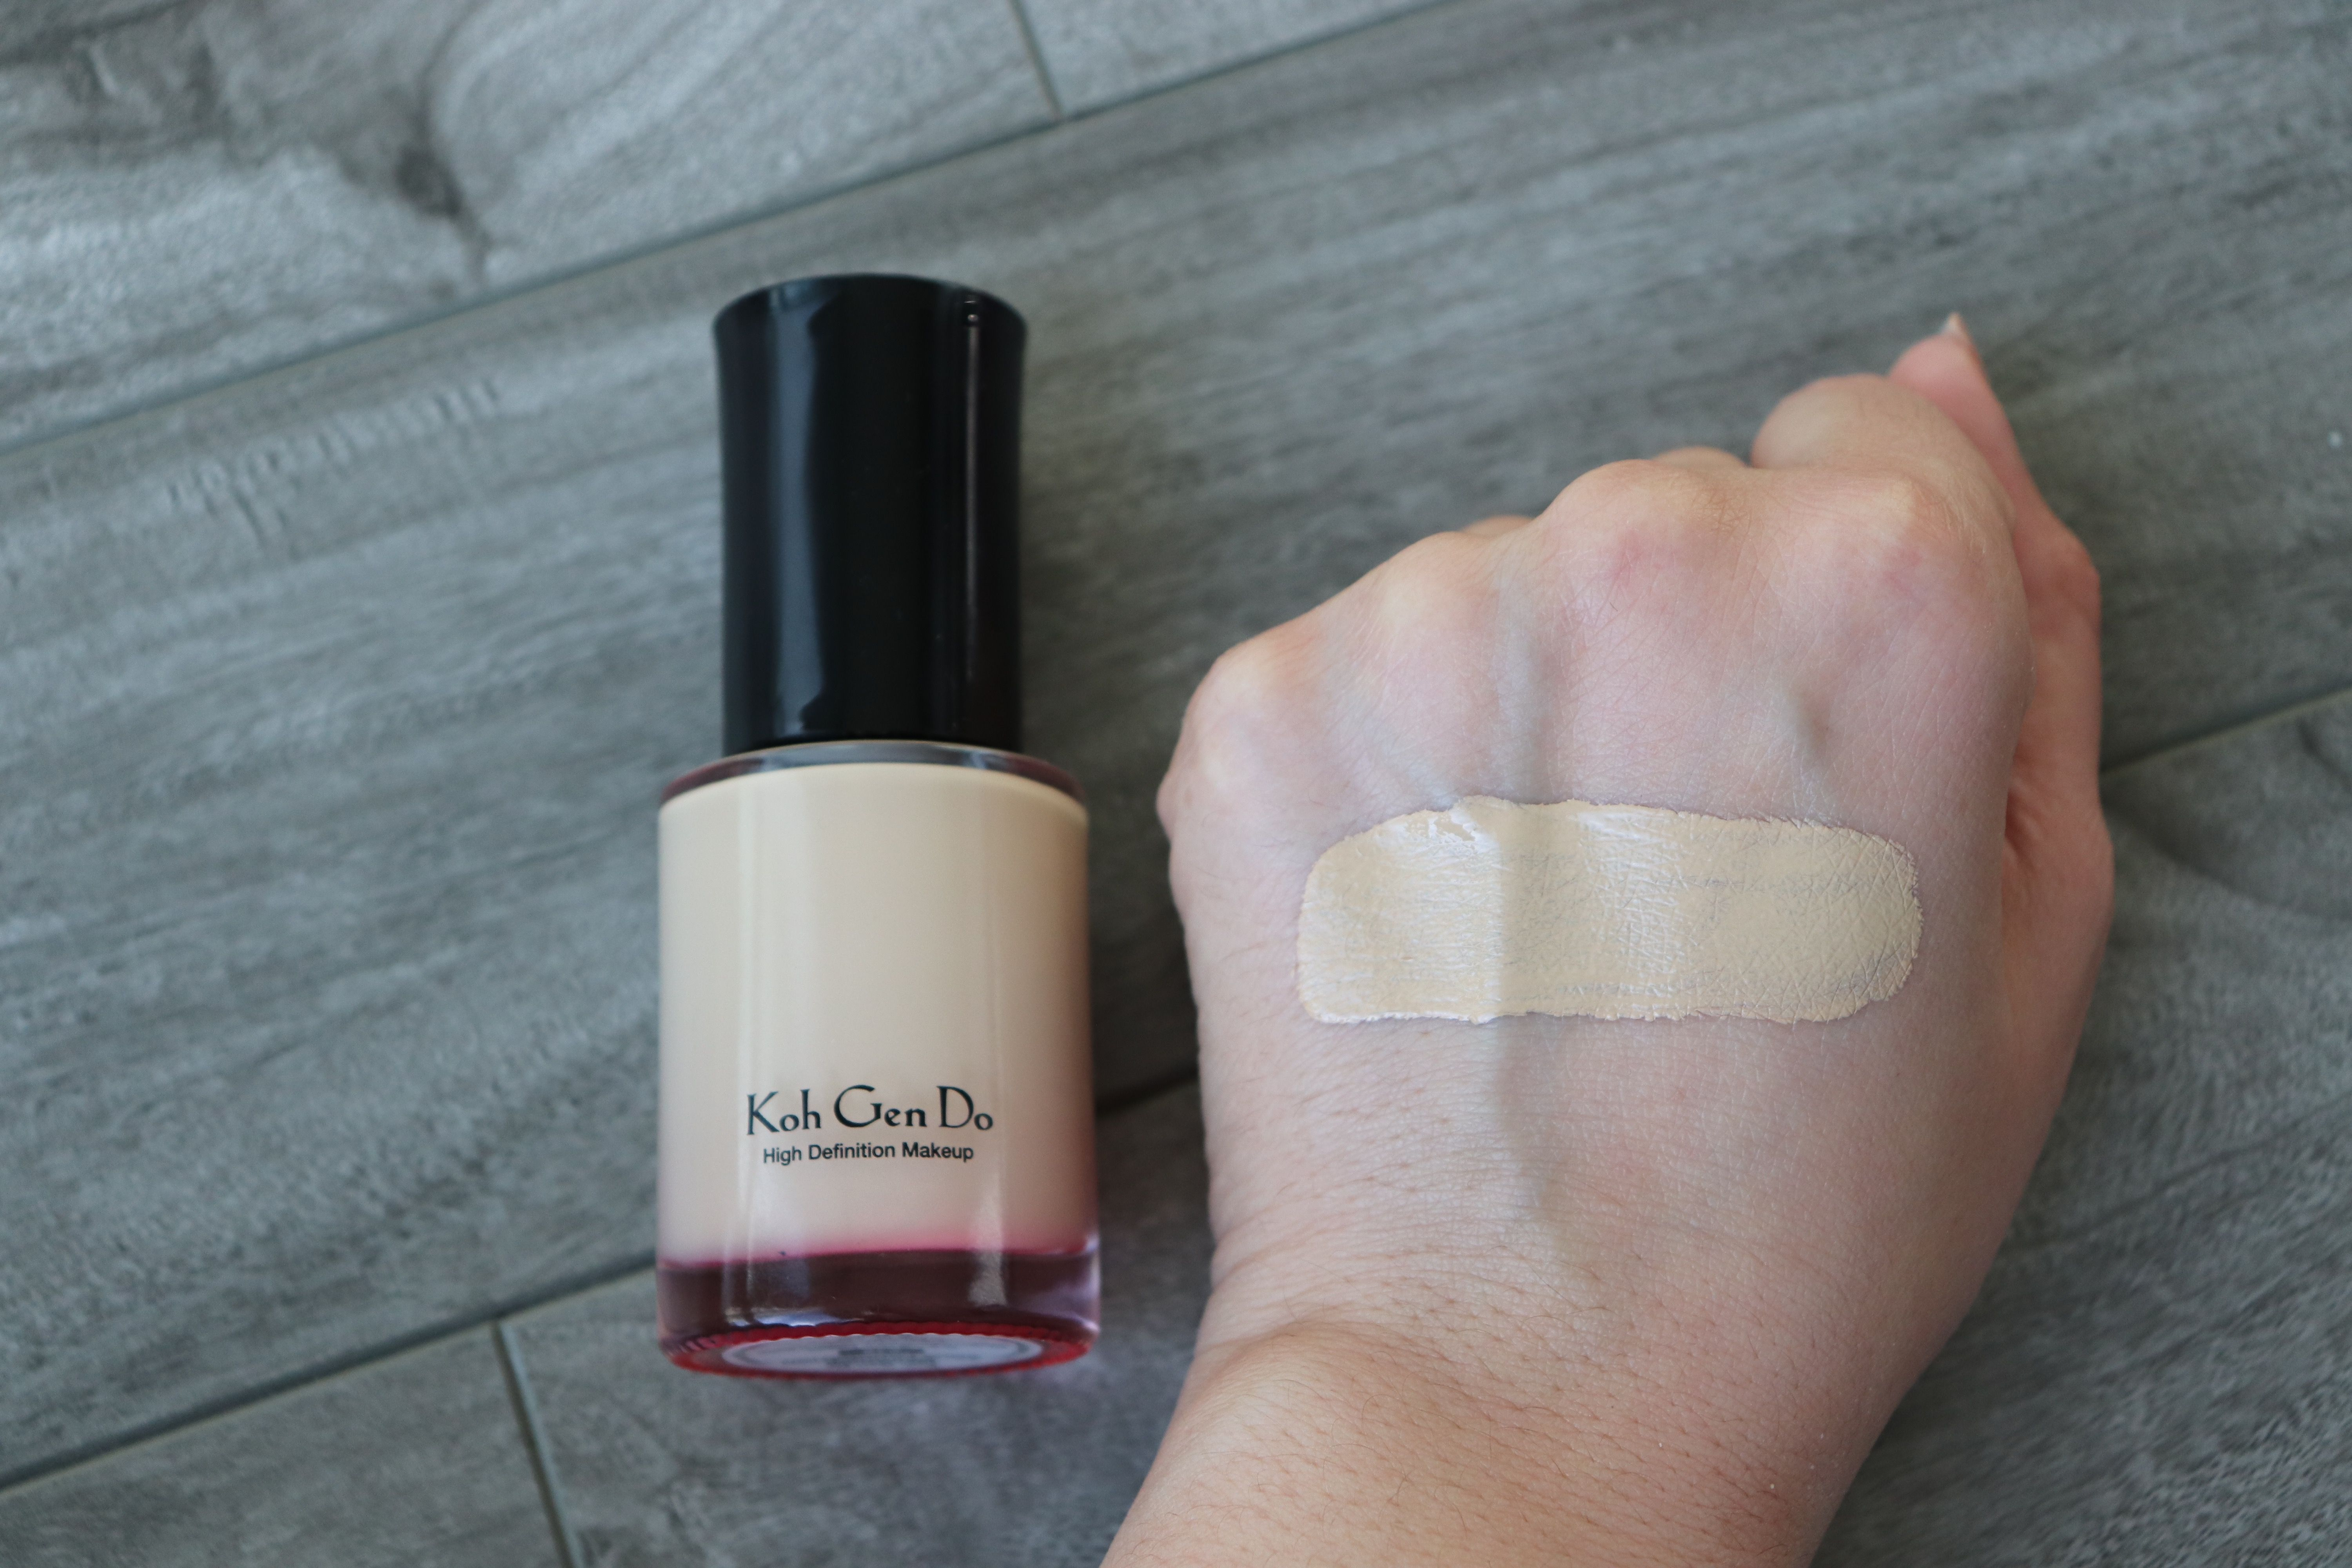 Koh Gen Do Maifanshi Aqua Foundation 213 Check Out The Blog For More Swatches And A Review Koh Gen Do Beauty Swatch